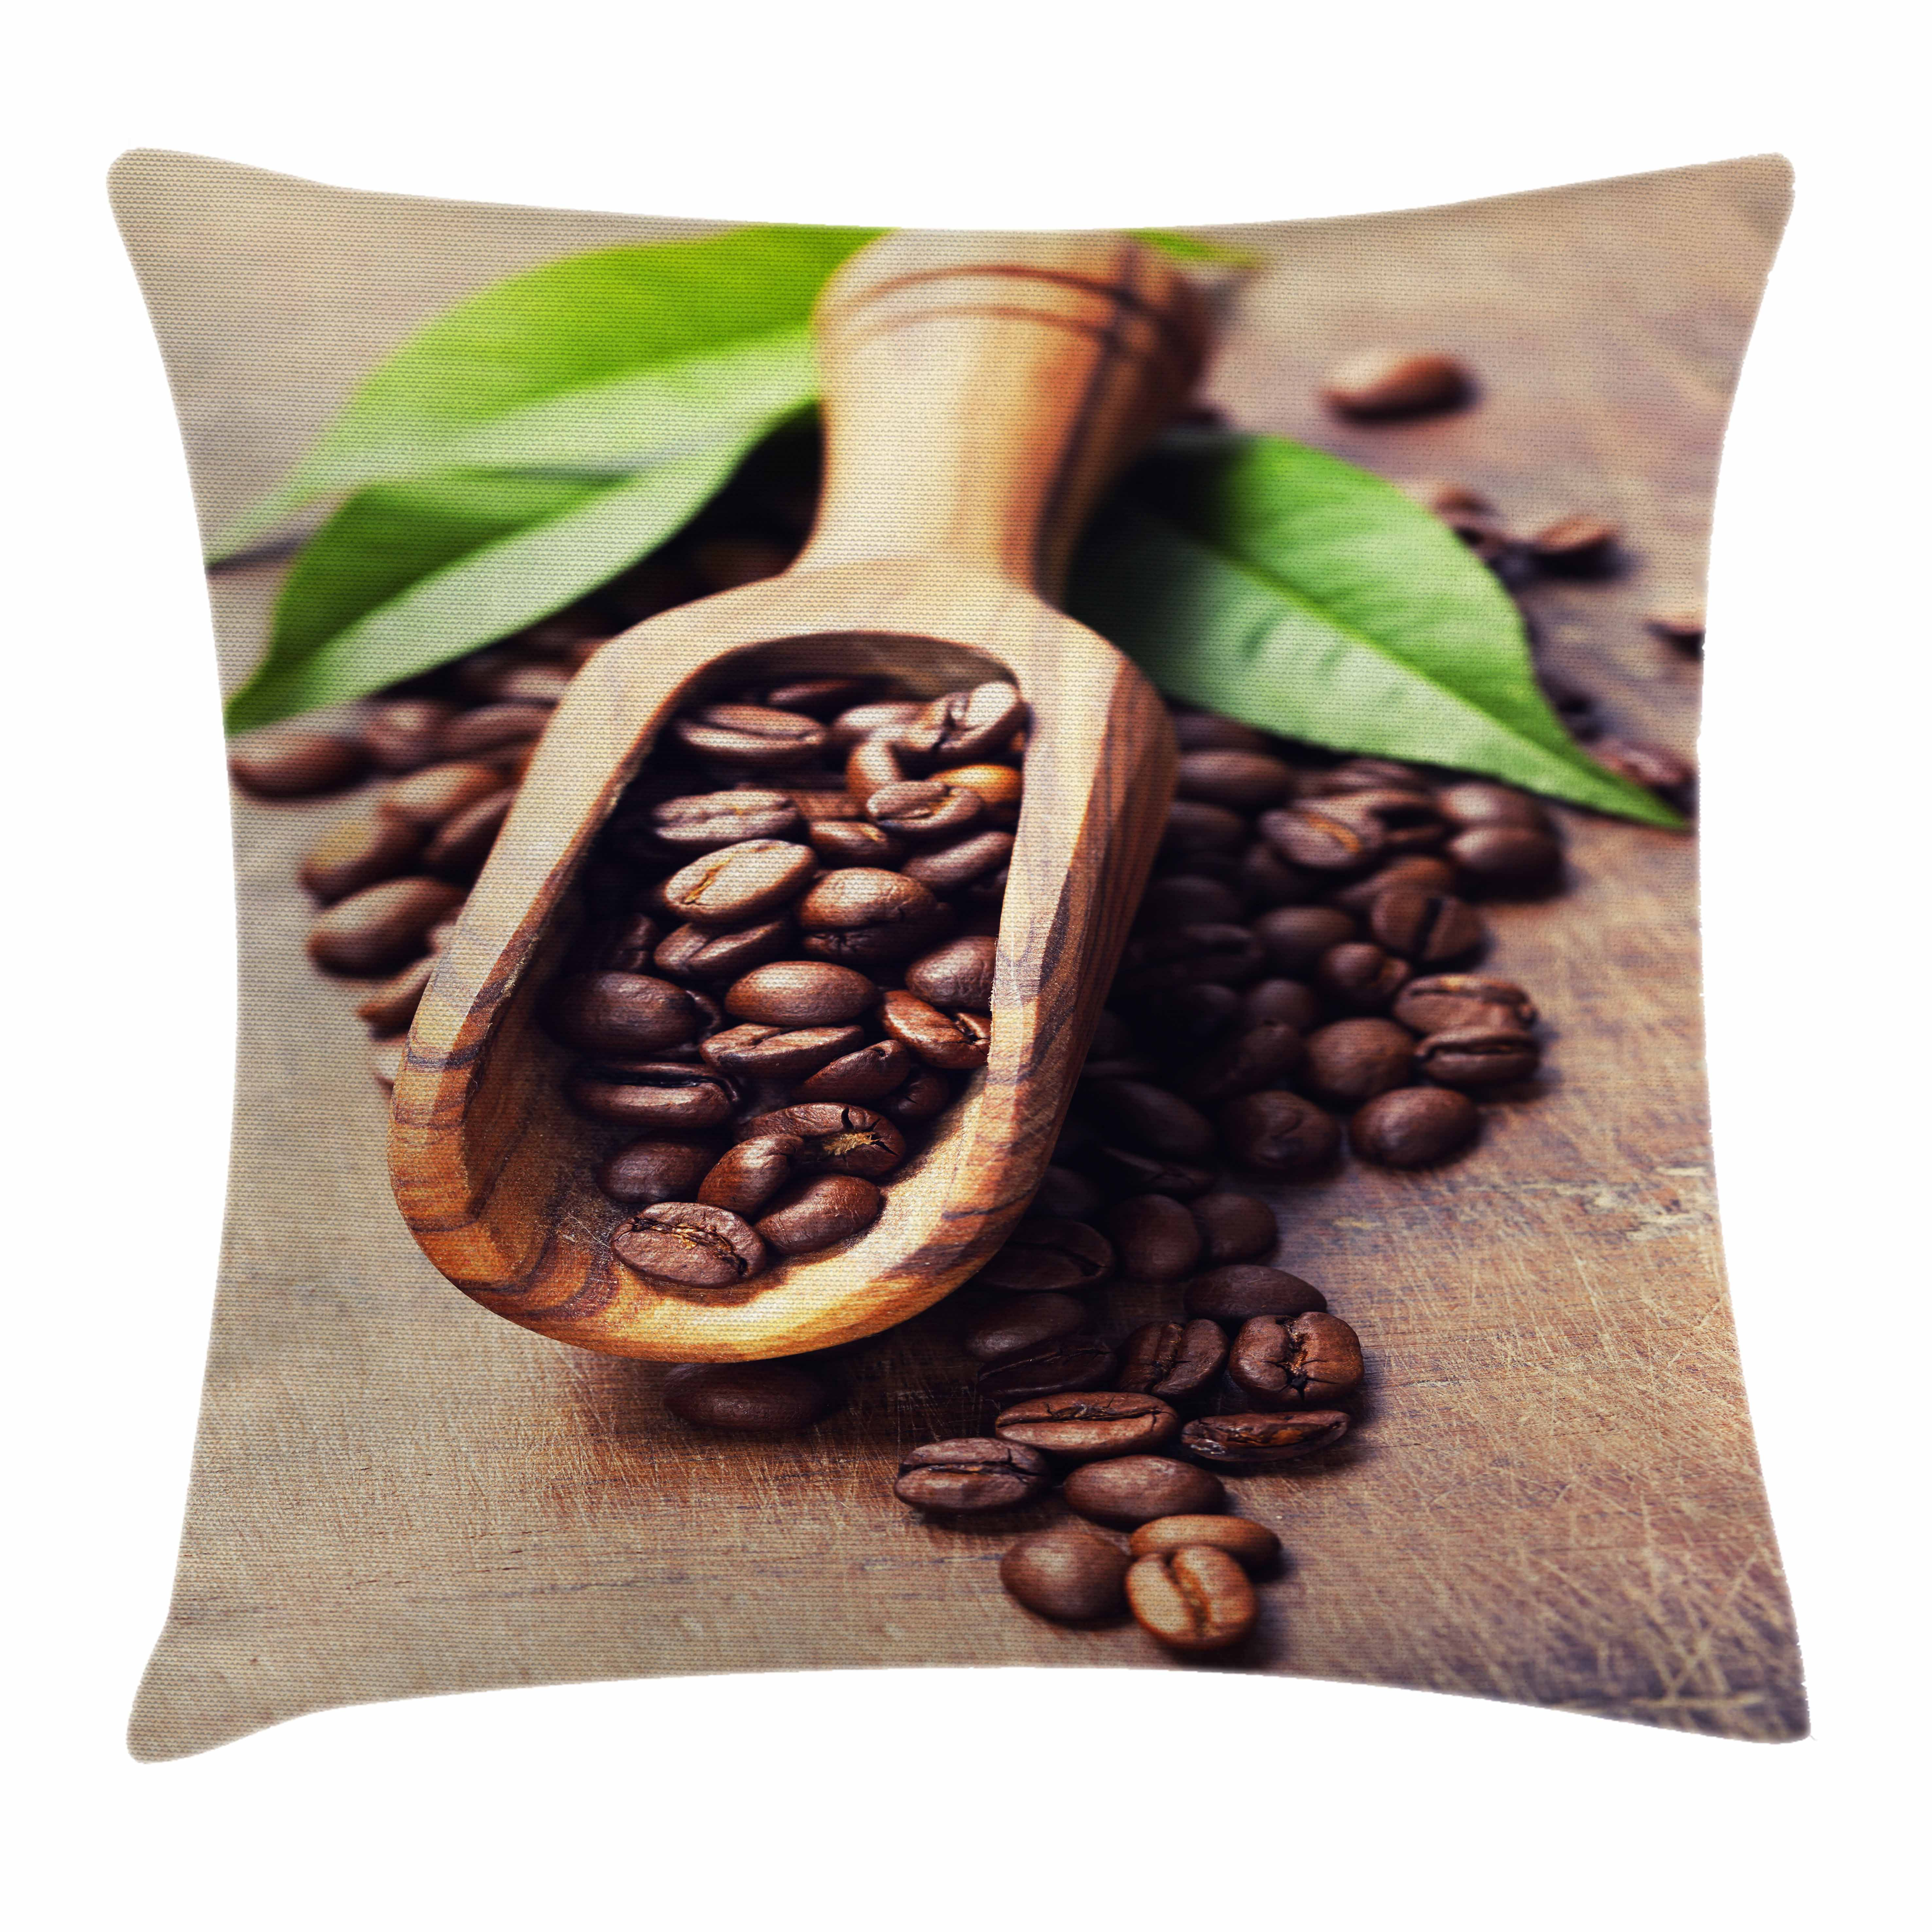 Coffee Throw Pillow Cushion Cover, Beans on the Old Table Morning Drink Waking Up Rustic Theme Leaves Beans, Decorative Square Accent Pillow Case, 18 X 18 Inches, Pale Caramel Green, by Ambesonne